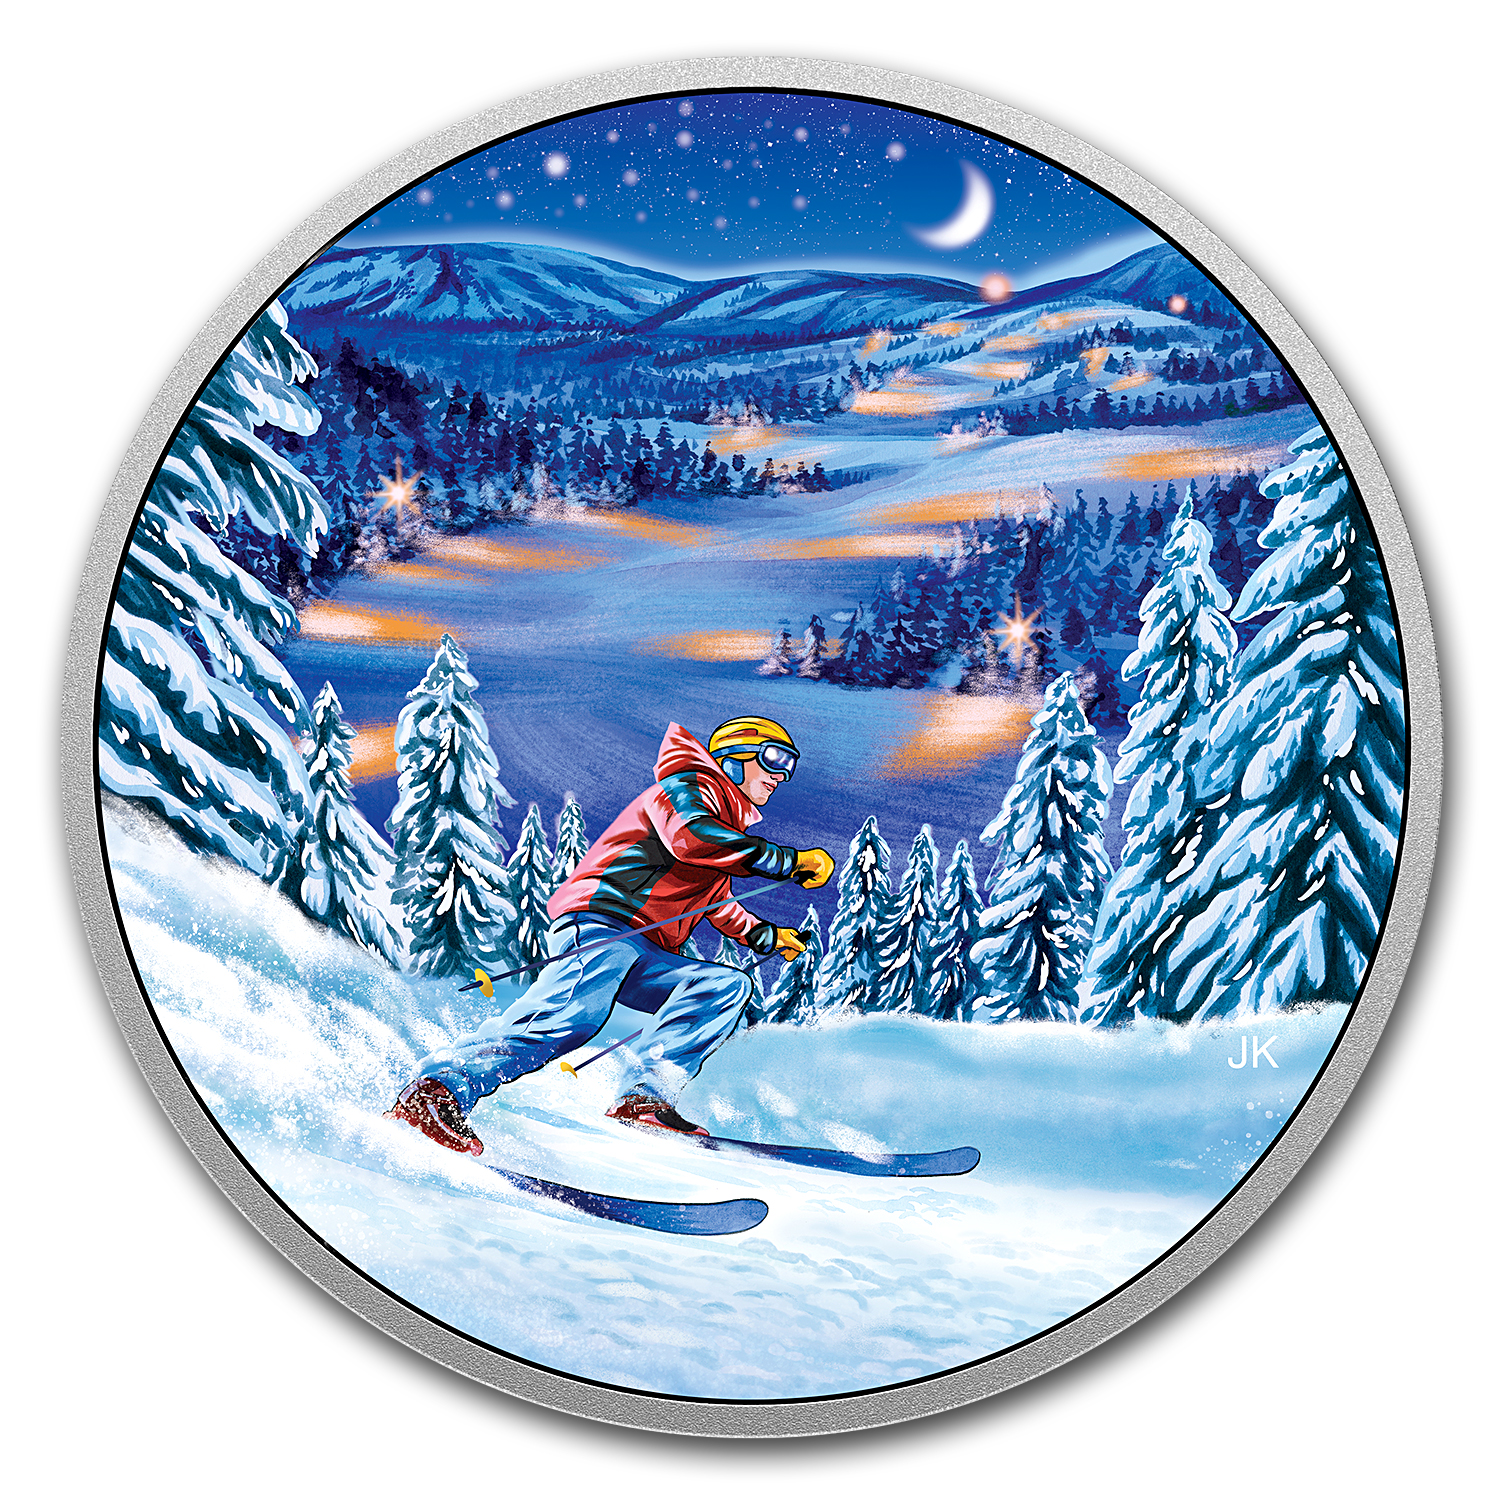 2017 RCM 3/4 oz Silver $15 Great Canadian Outdoors: Night Skiing